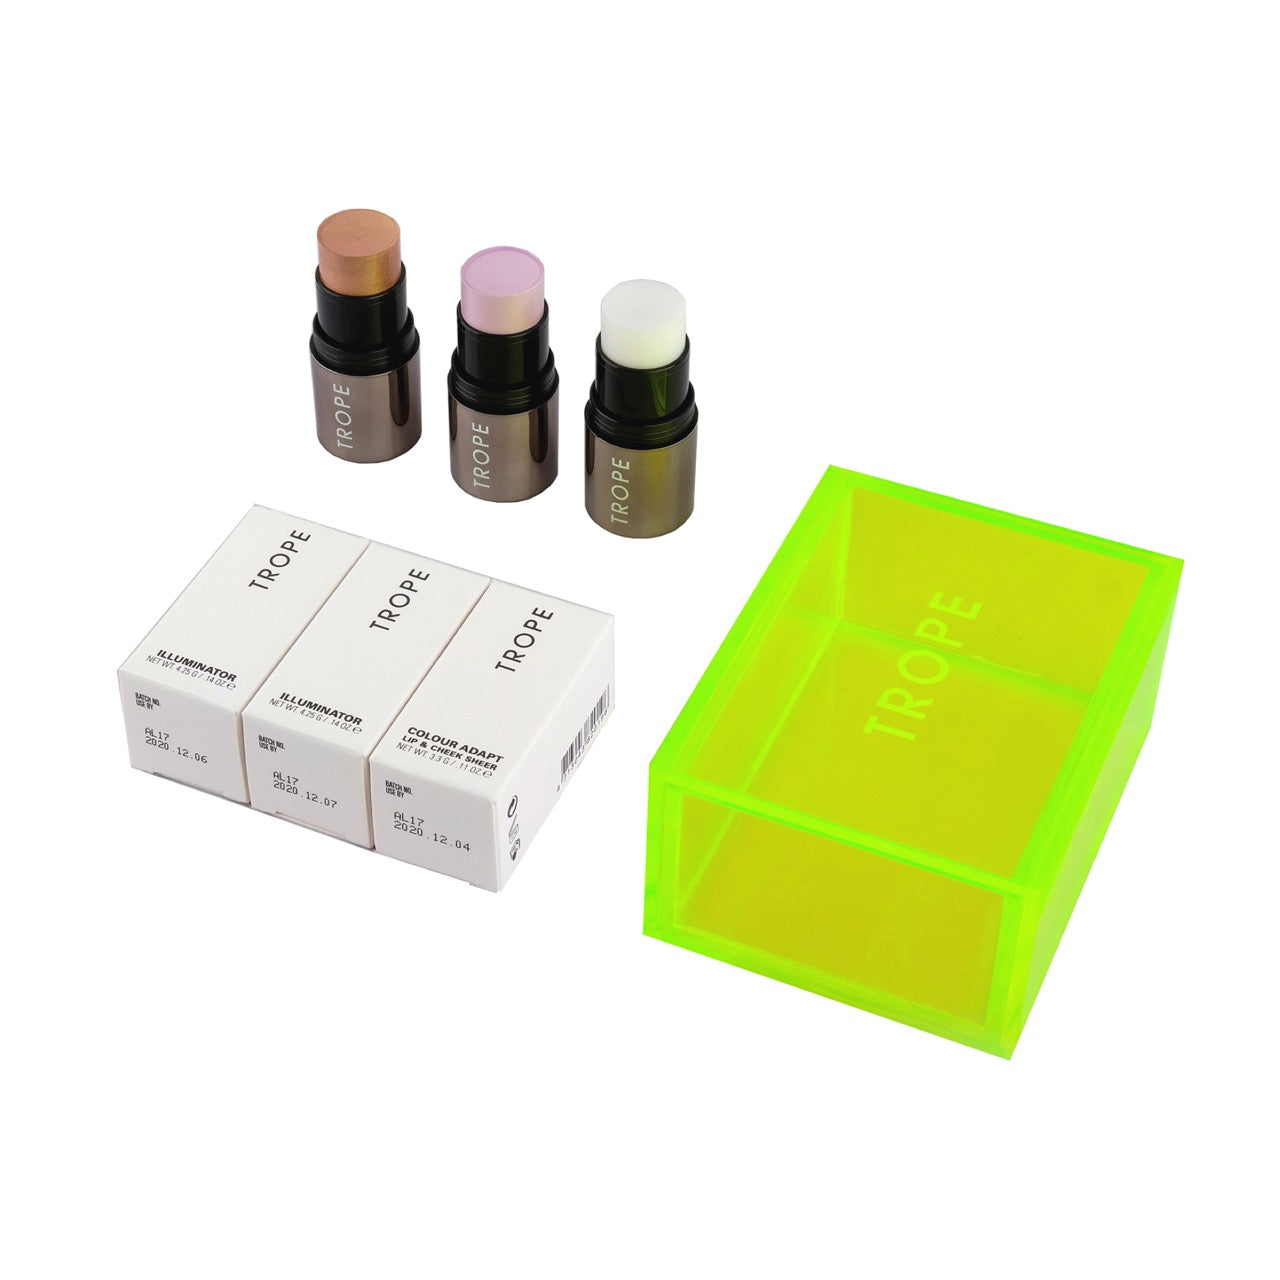 LIGHT AND BLOSSOM 3pc Face & Lip Colour Set